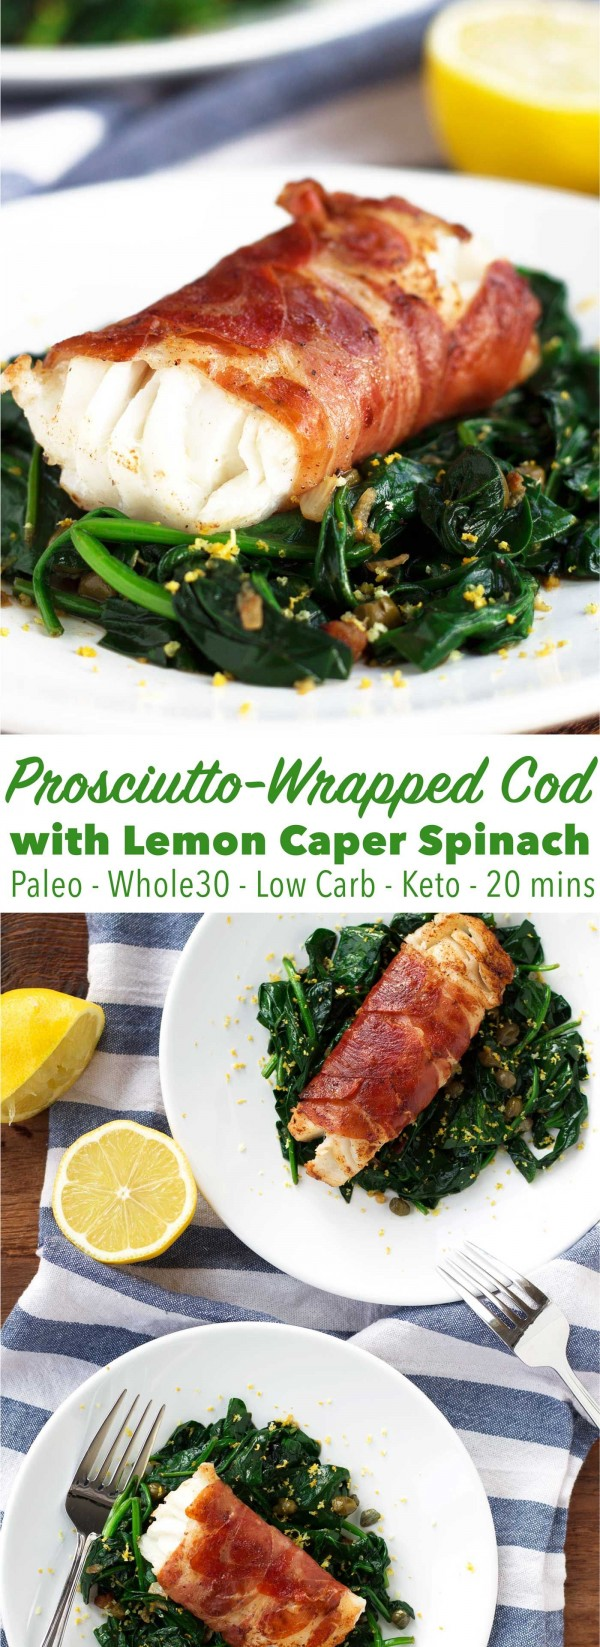 Check out this recipe for Prosciutto wrapped cod with lemon caper spinach. Yummy! #RecipeIdeas @recipes_to_go